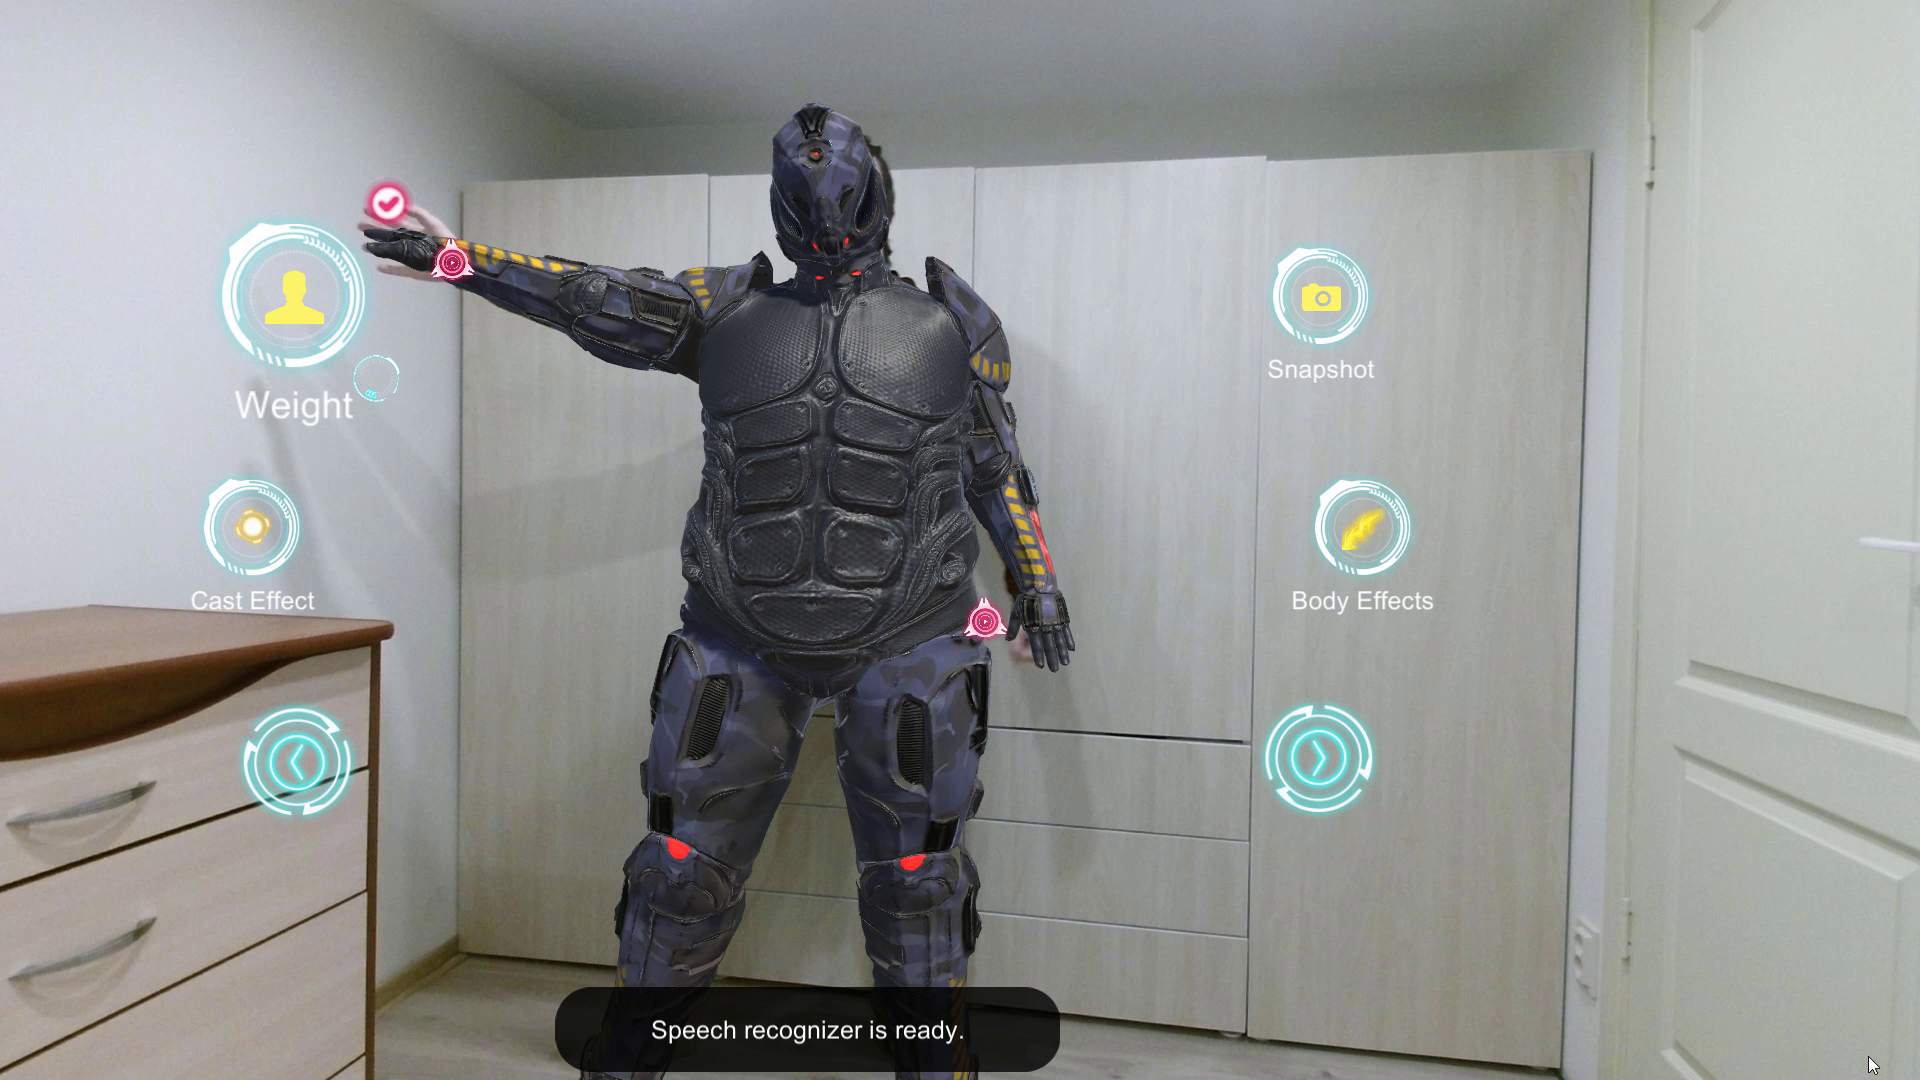 Paparmali 4 - AR Superhero Outfit - Kinect Body Tracking